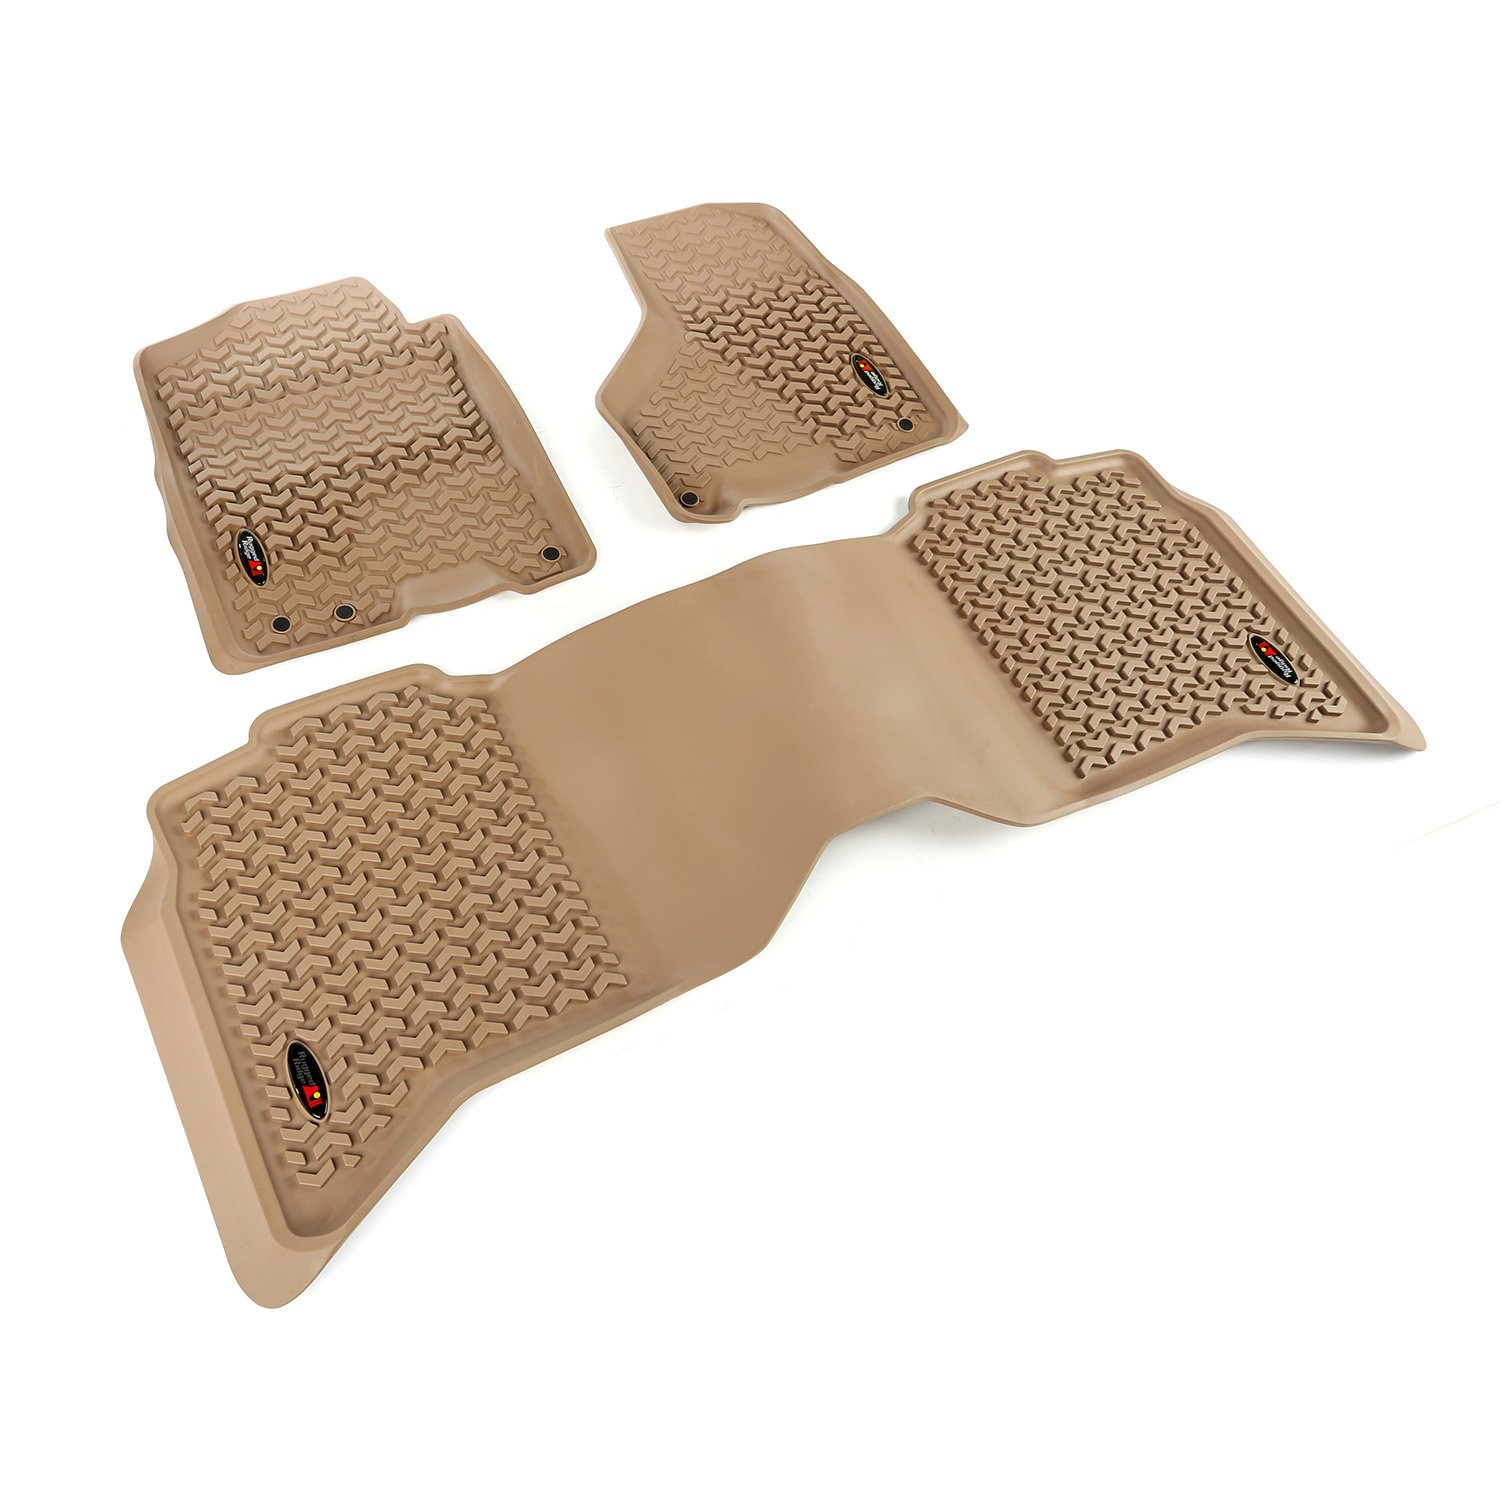 Rugged Ridge All-Terrain 83989.42 Tan Front and Rear Floor Liner Kit For Select Dodge Ram, Ram 1500, 2500 and 3500 Models